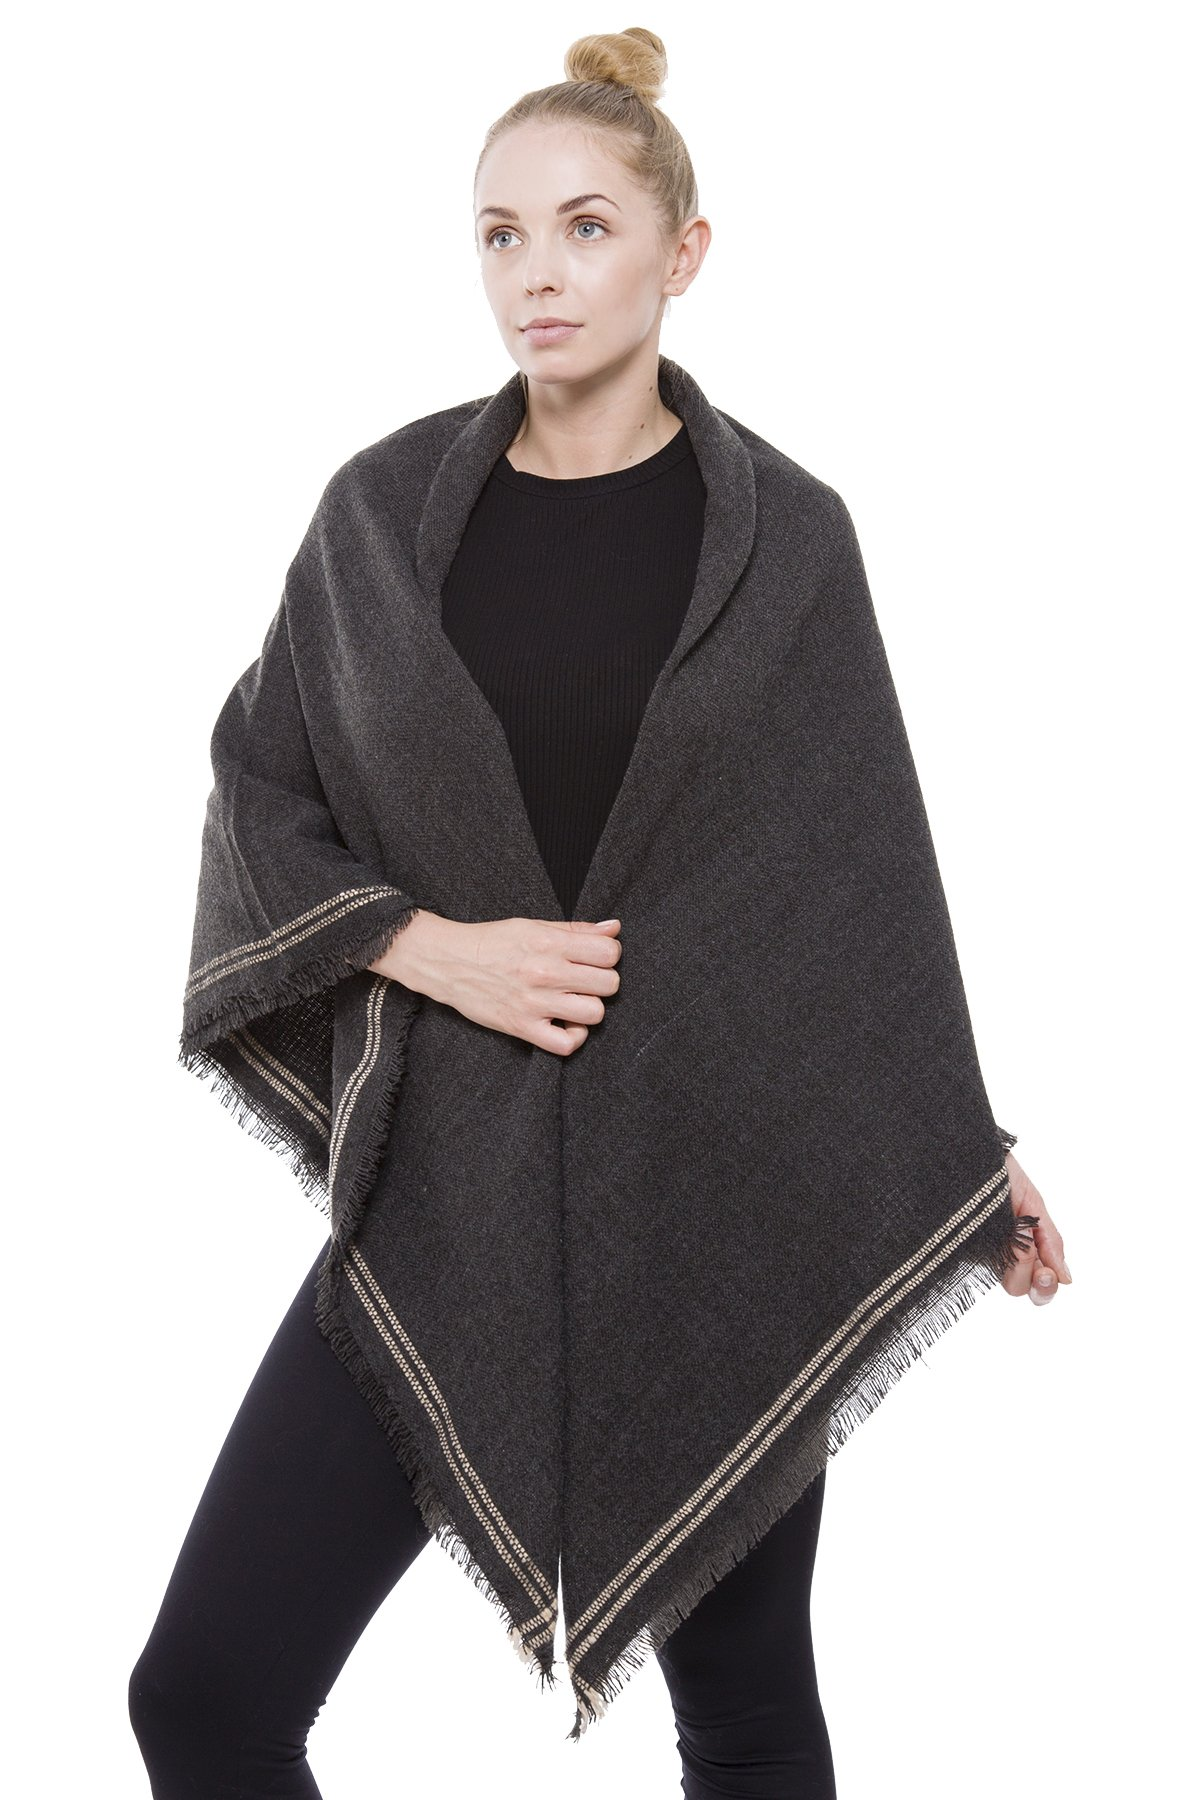 BYOS Women Winter Versatile Chic Tartan Plaid Oversized Blanket Scarf Wrap Shawl (Double Line Border Charcoal Gray)